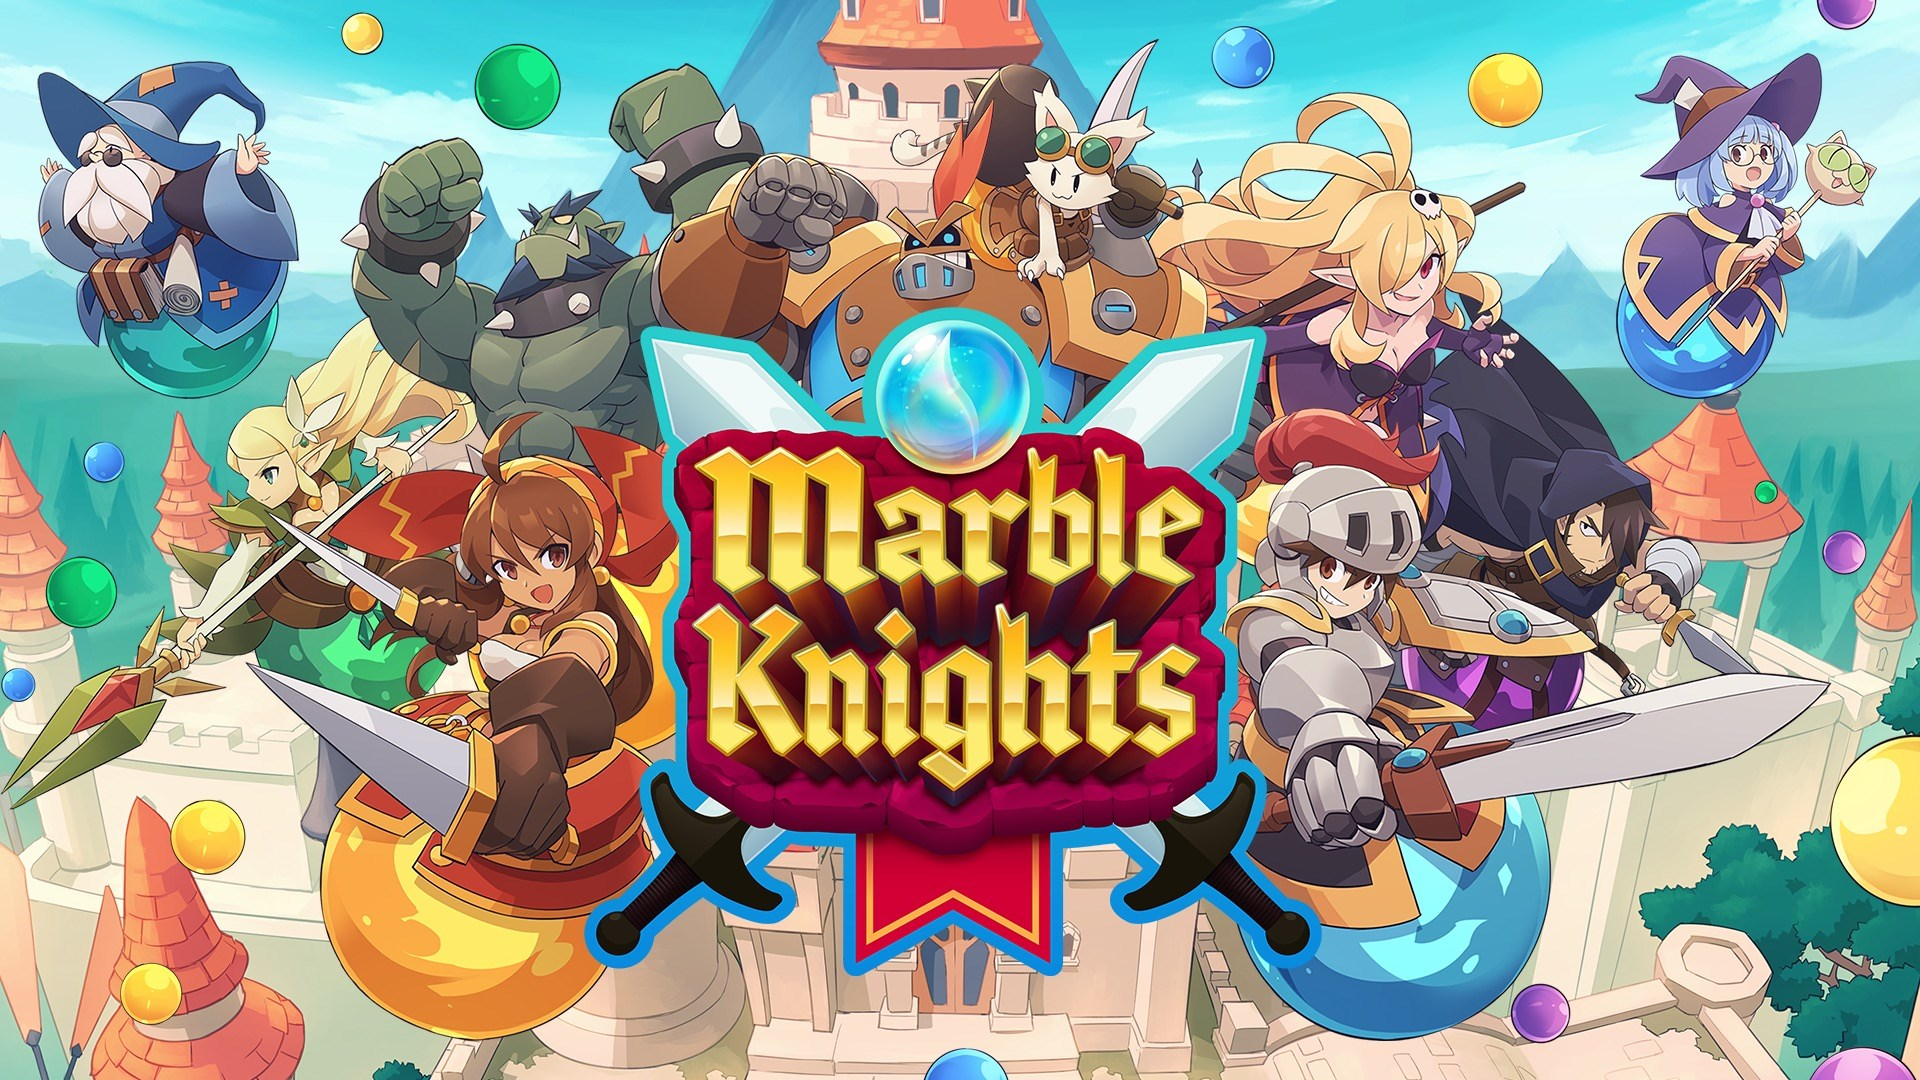 'Marble Knights' from WayForward Is a Multiplayer Fantasy Adventure Game Out Now on Apple Arcade